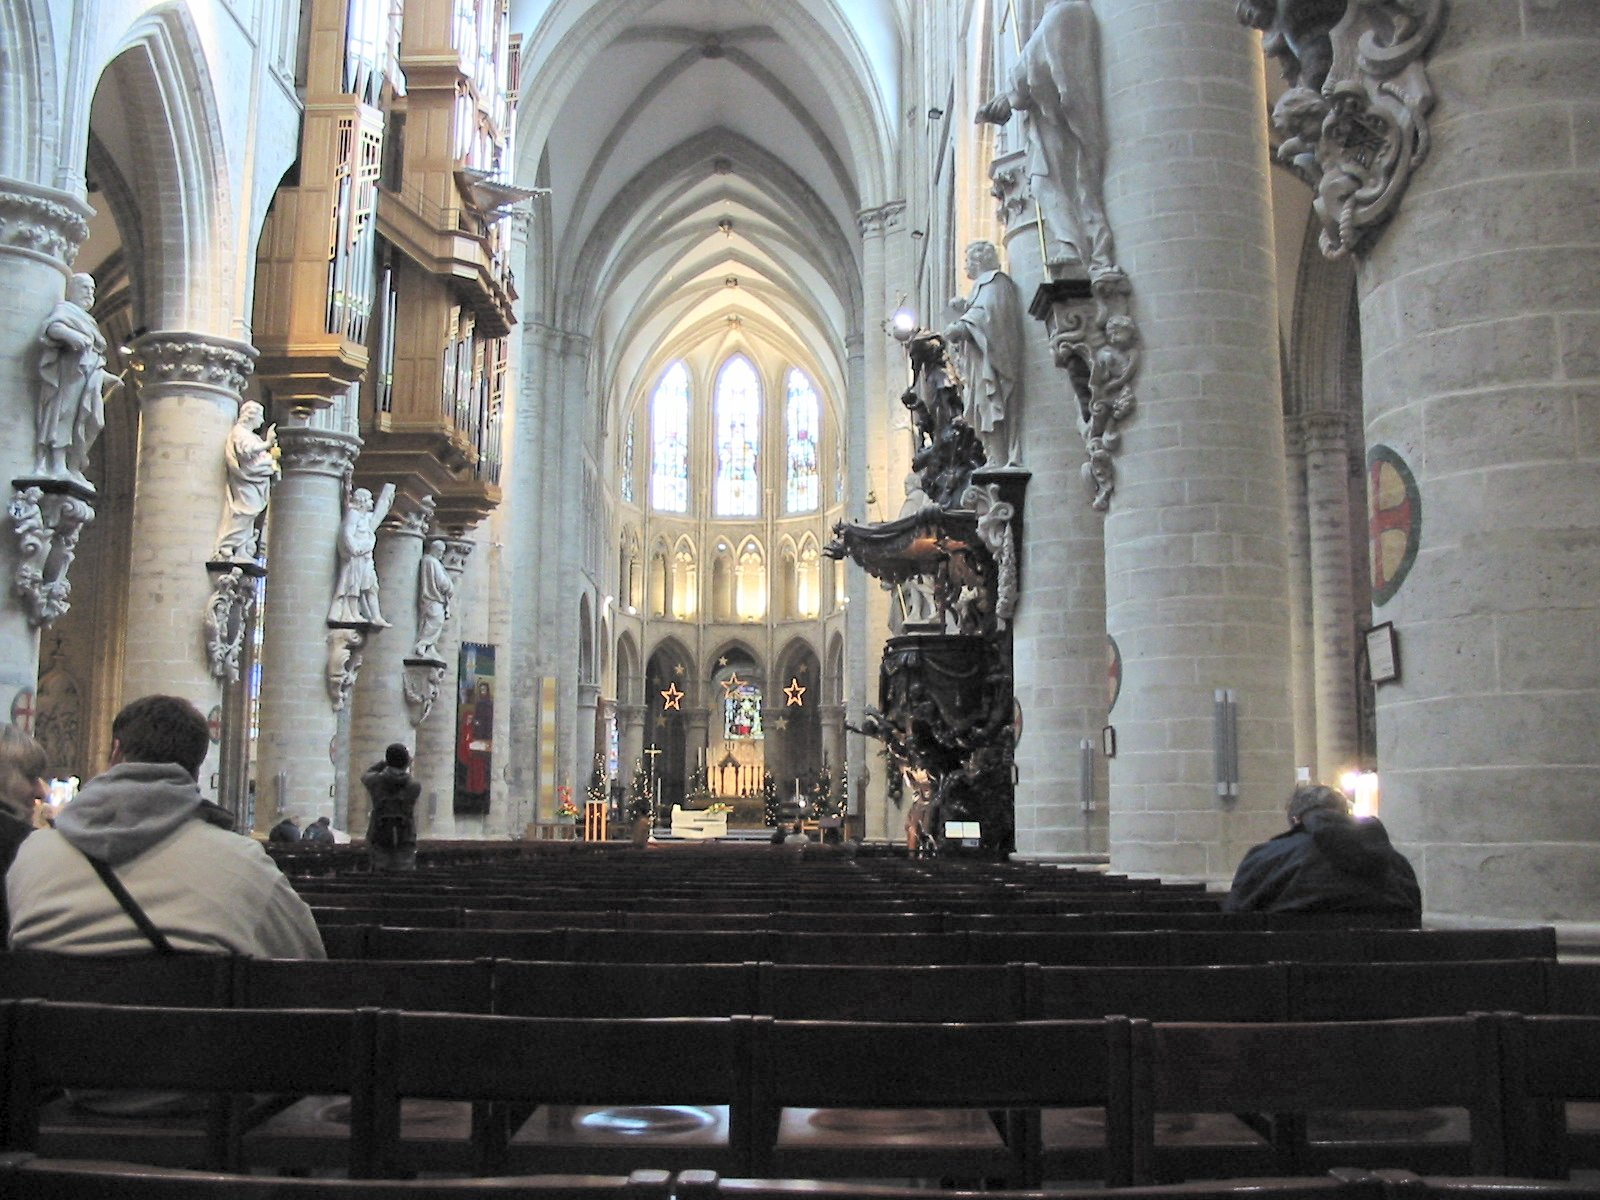 Cath drale saints michel et gudule de bruxelles for Interieur leuven